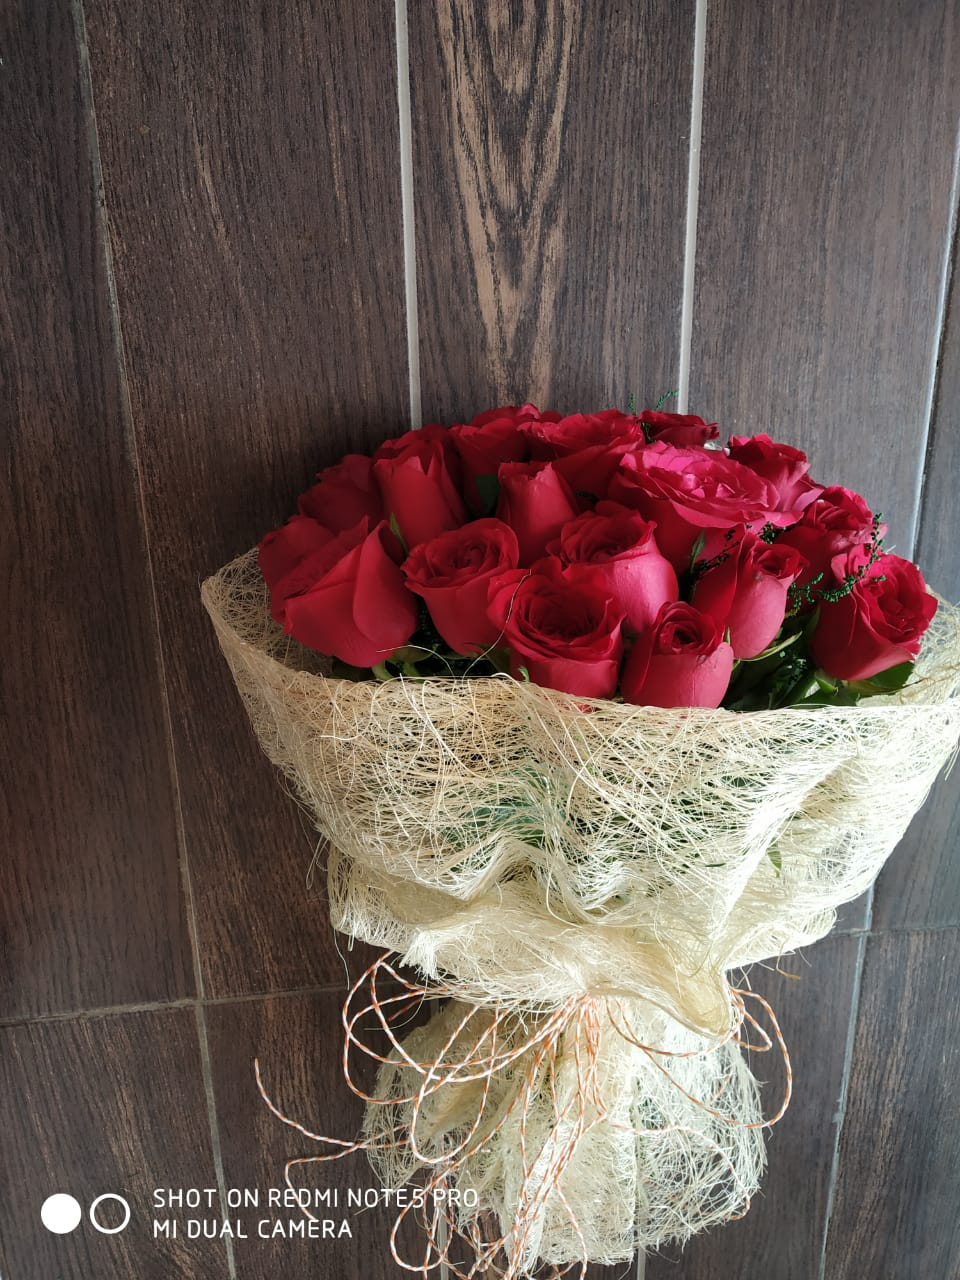 send flower Lodi Colony DelhiRed Roses in Jute